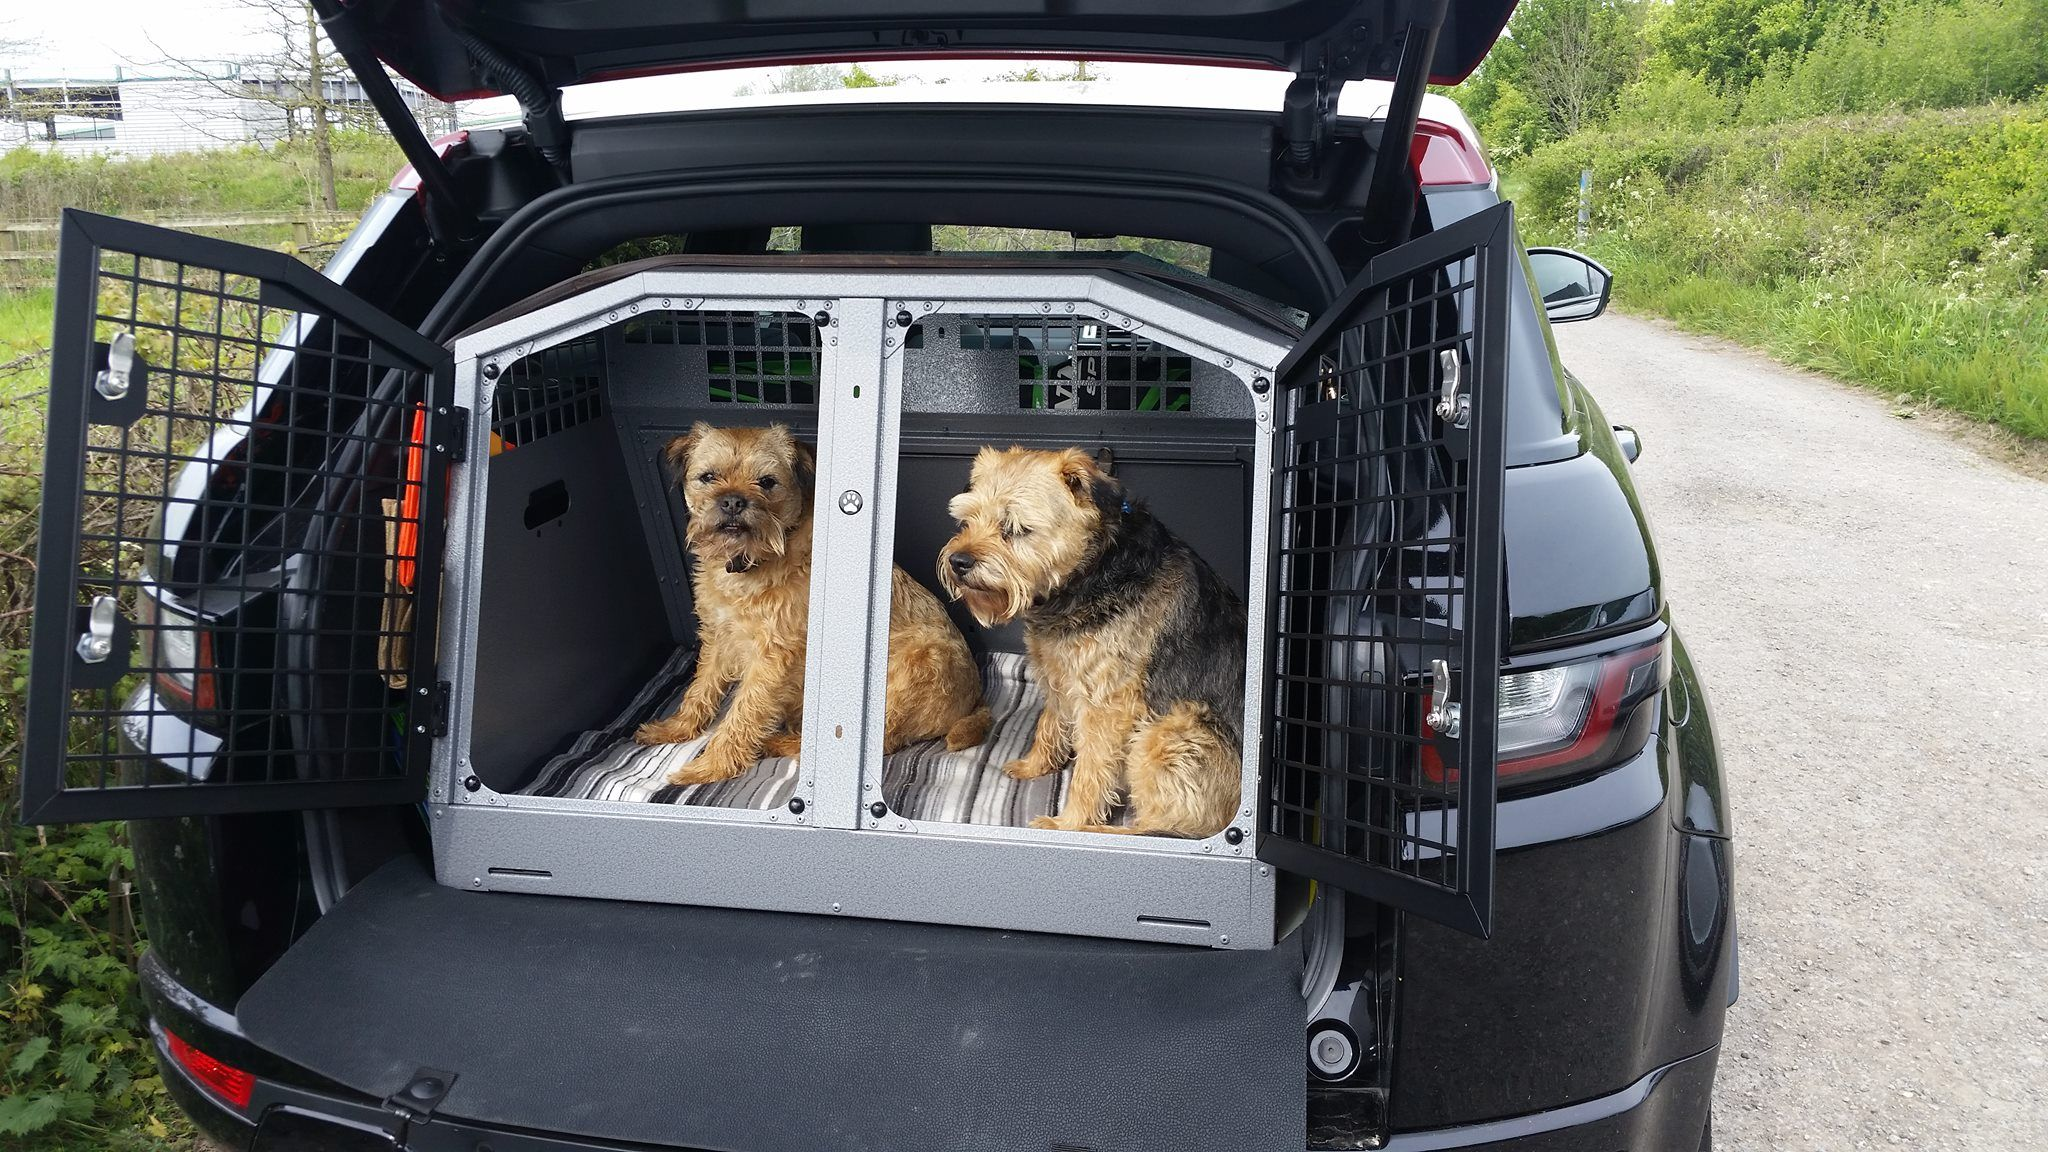 Dog Safety B25 Border Terriers Named Archie And Aubrey In A